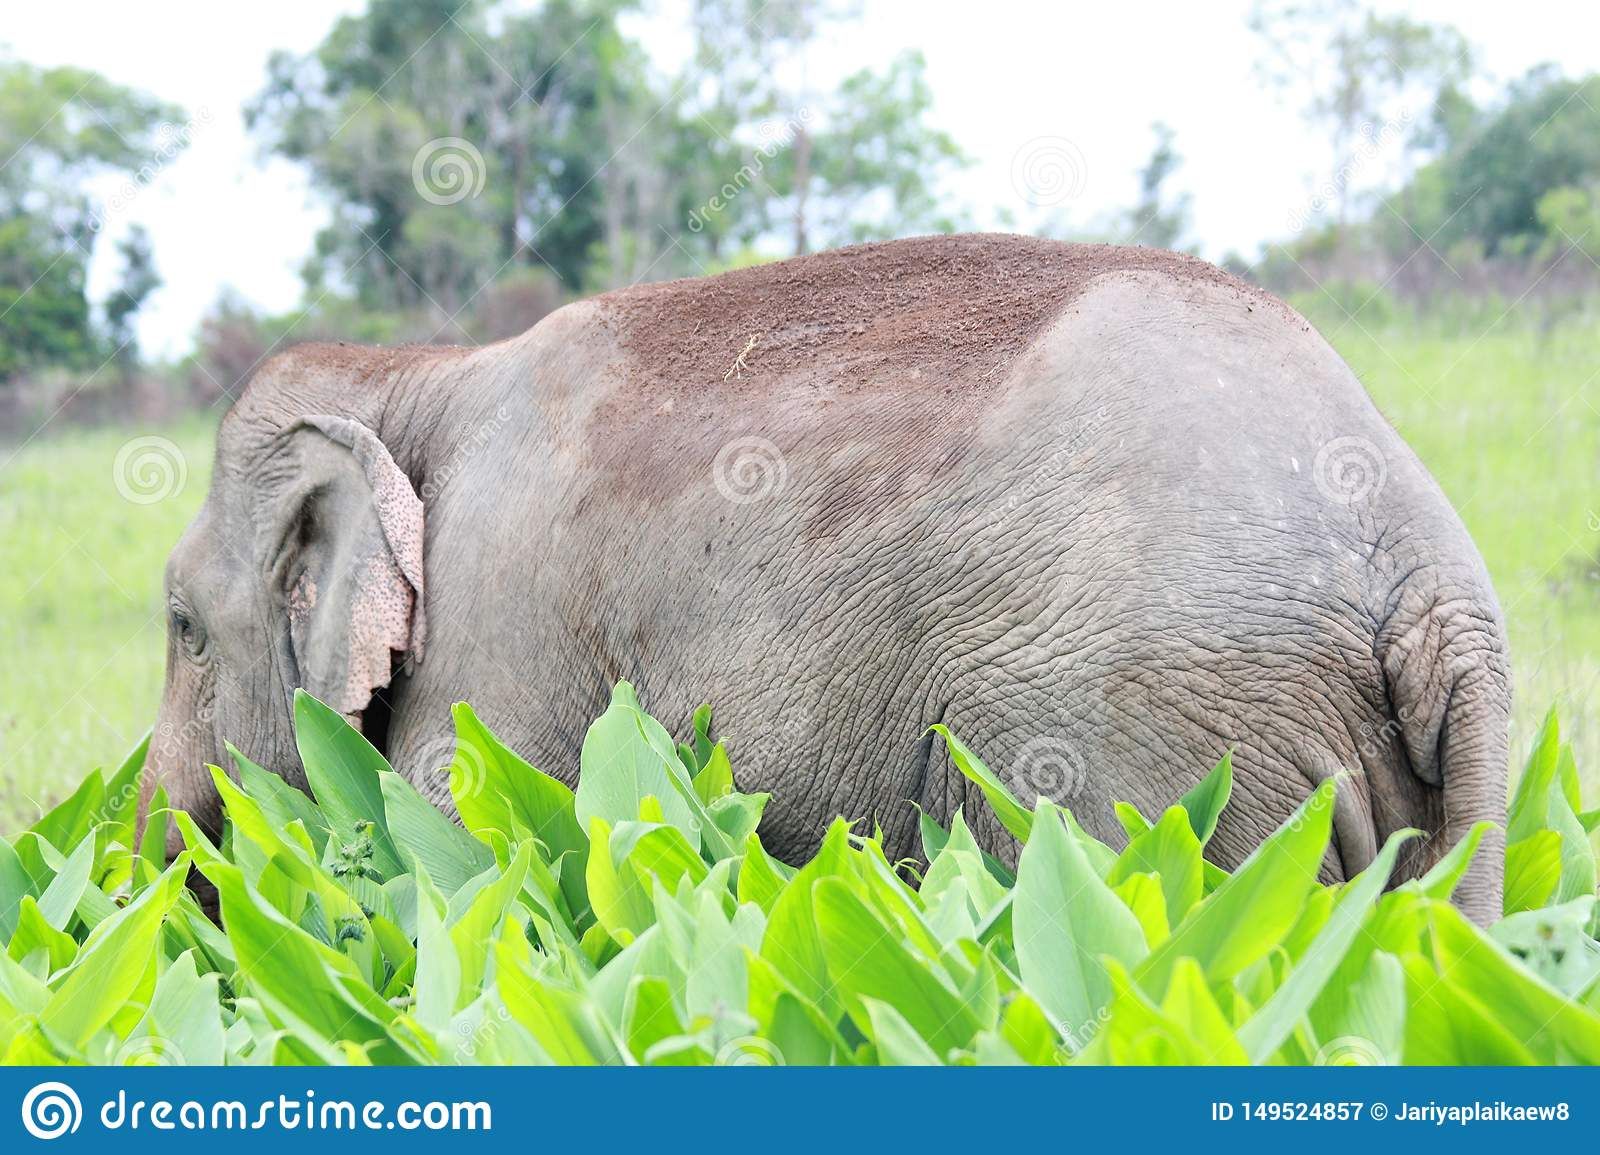 A male elephant standing in the field